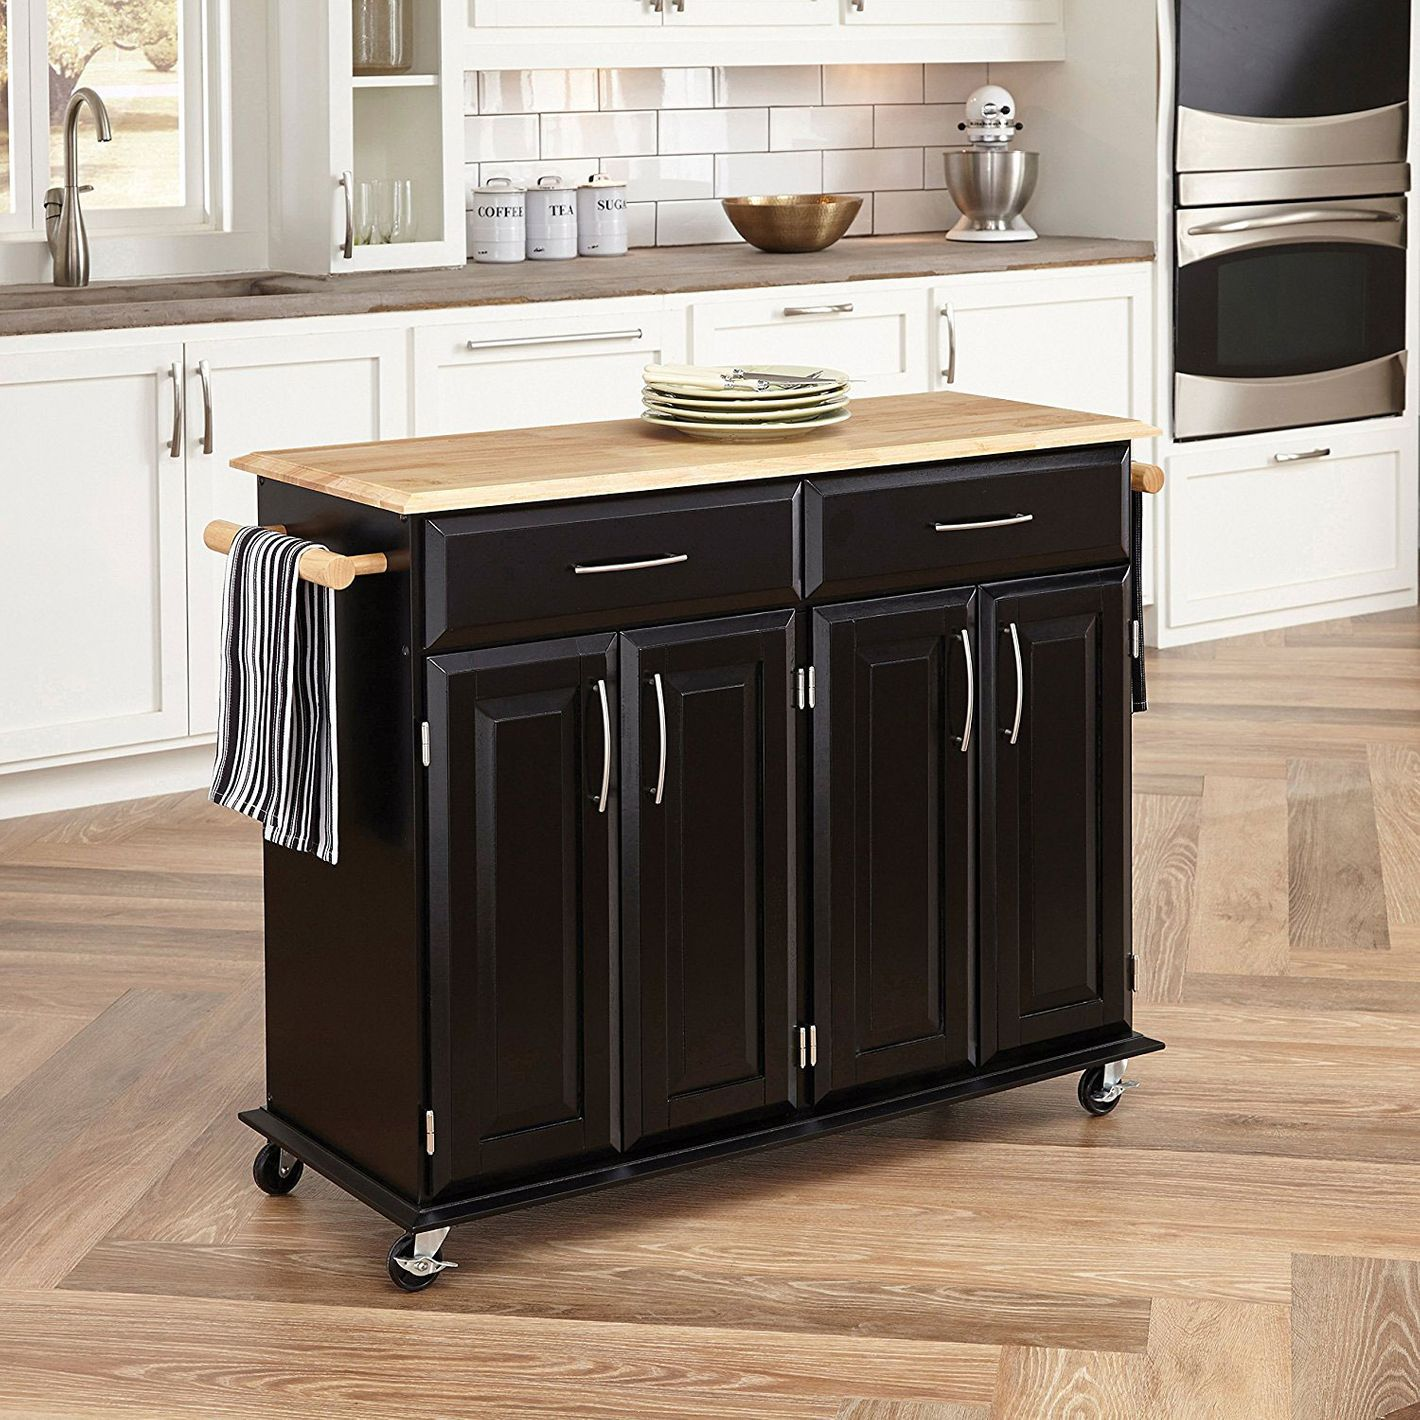 Home Styles 4528 95 Dolly Madison Kitchen Cart Black Finish